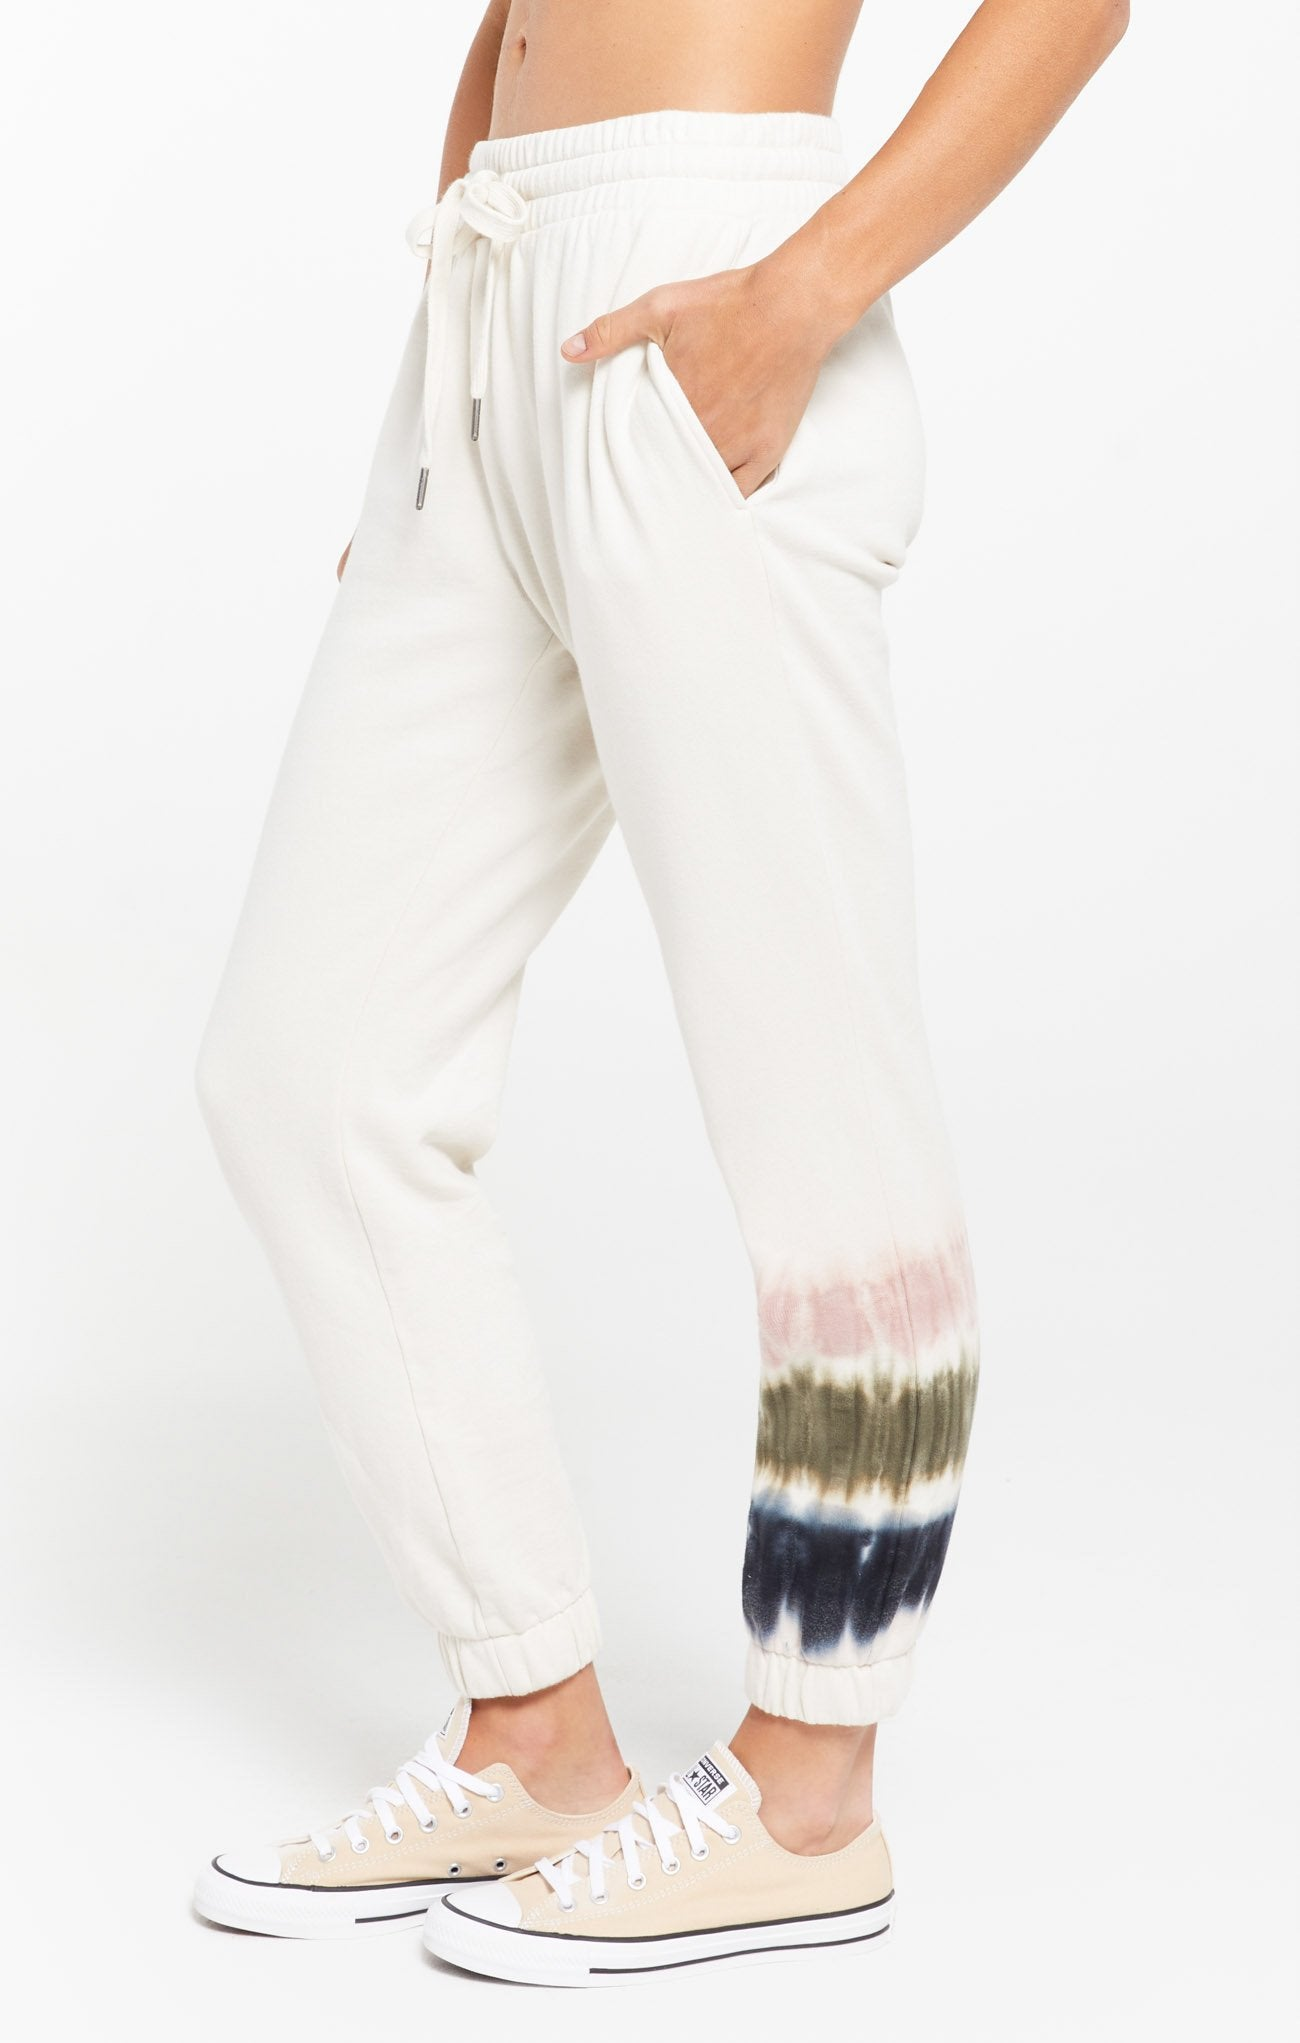 Z Supply Selene Stripe Tie-Dye Fleece Joggers